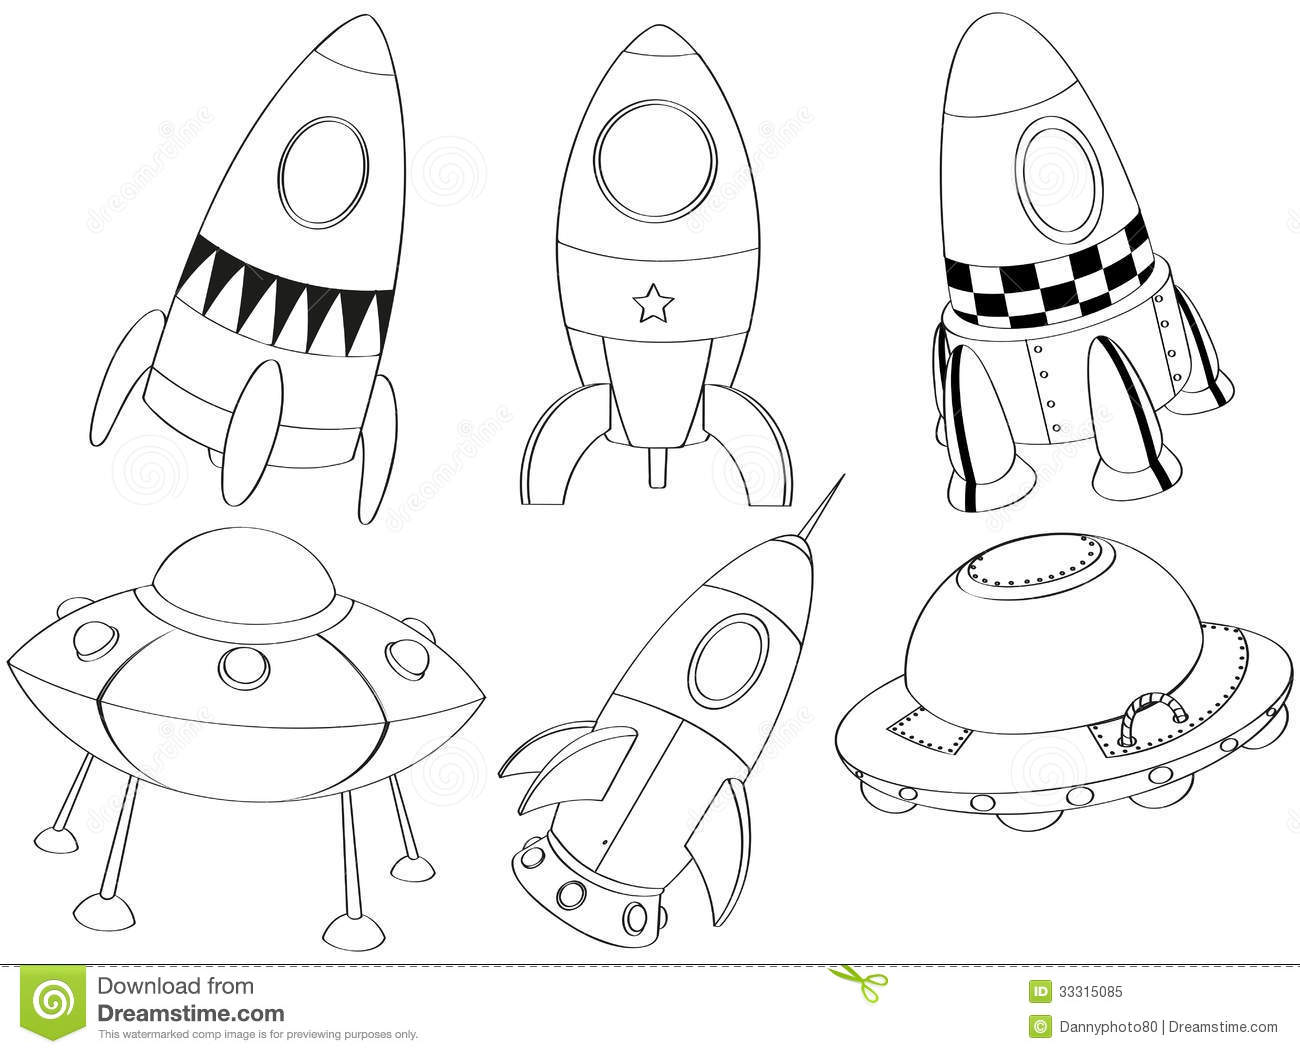 Silhouettes Of The Different Spaceships Royalty Free Stock